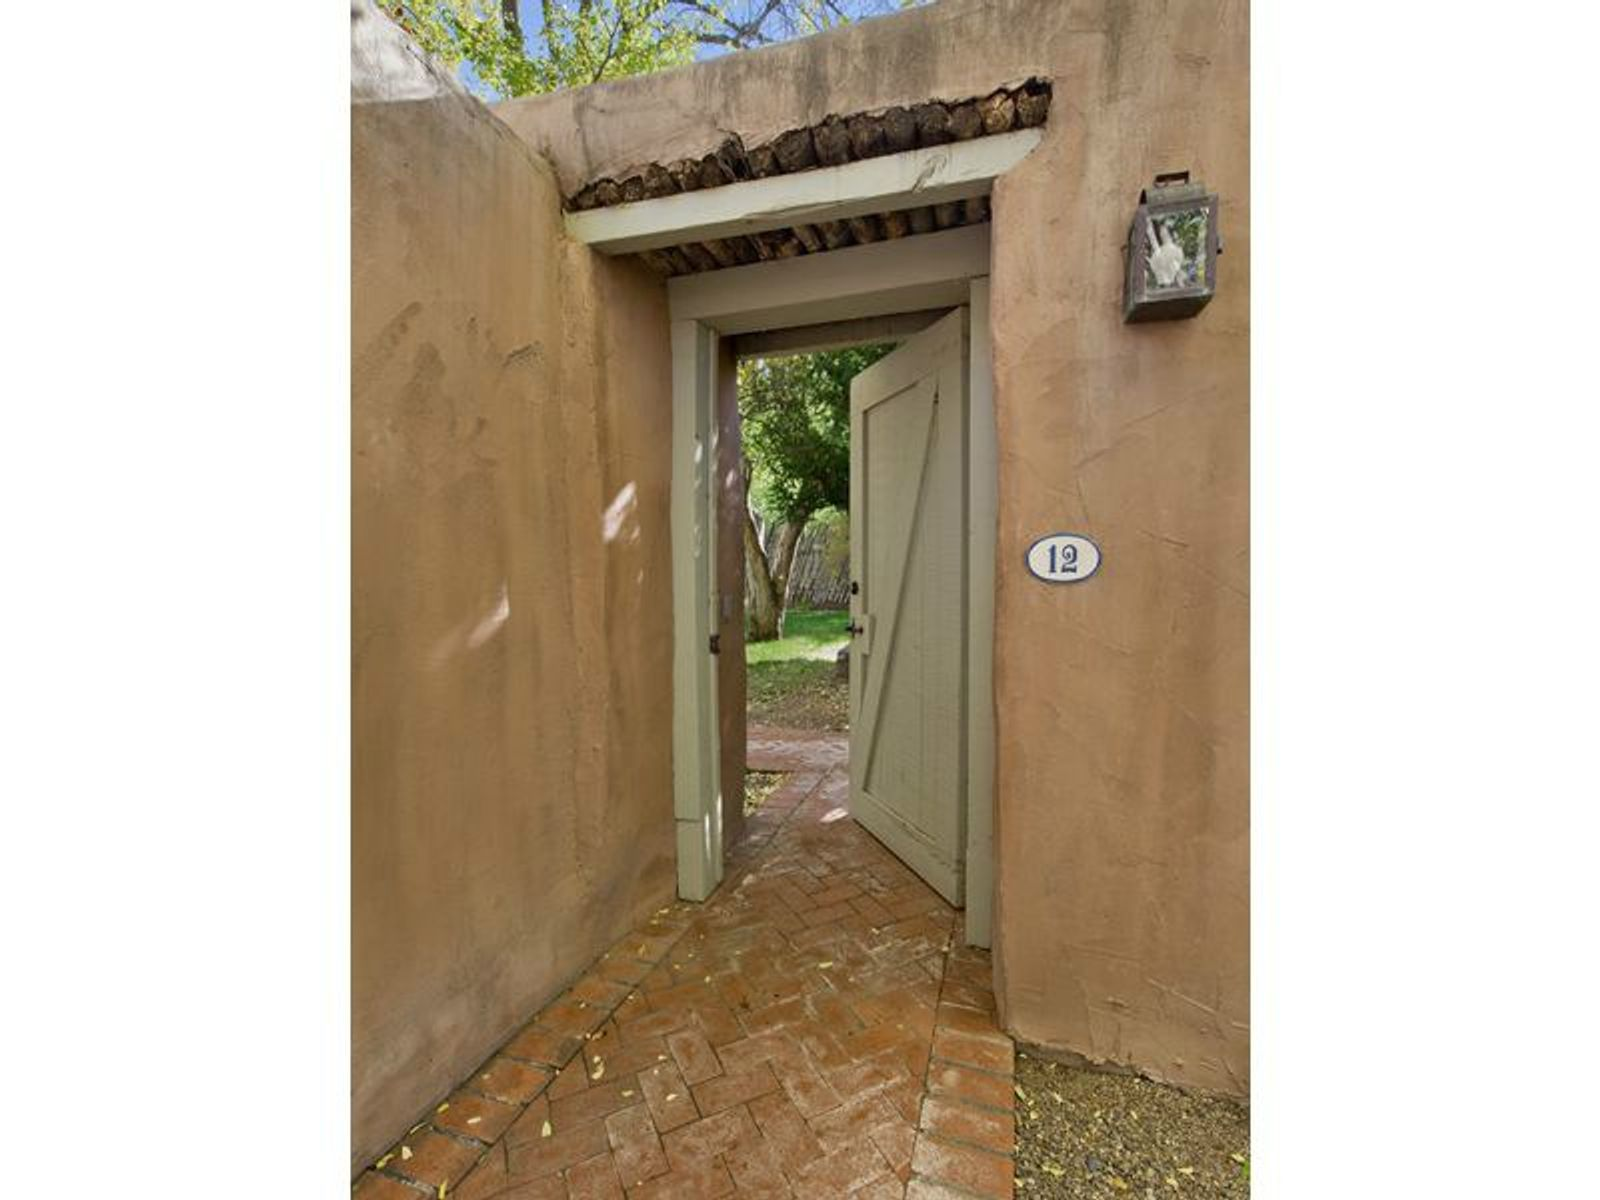 644 Canyon Road #12, Santa Fe NM Condominium - Santa Fe Real Estate